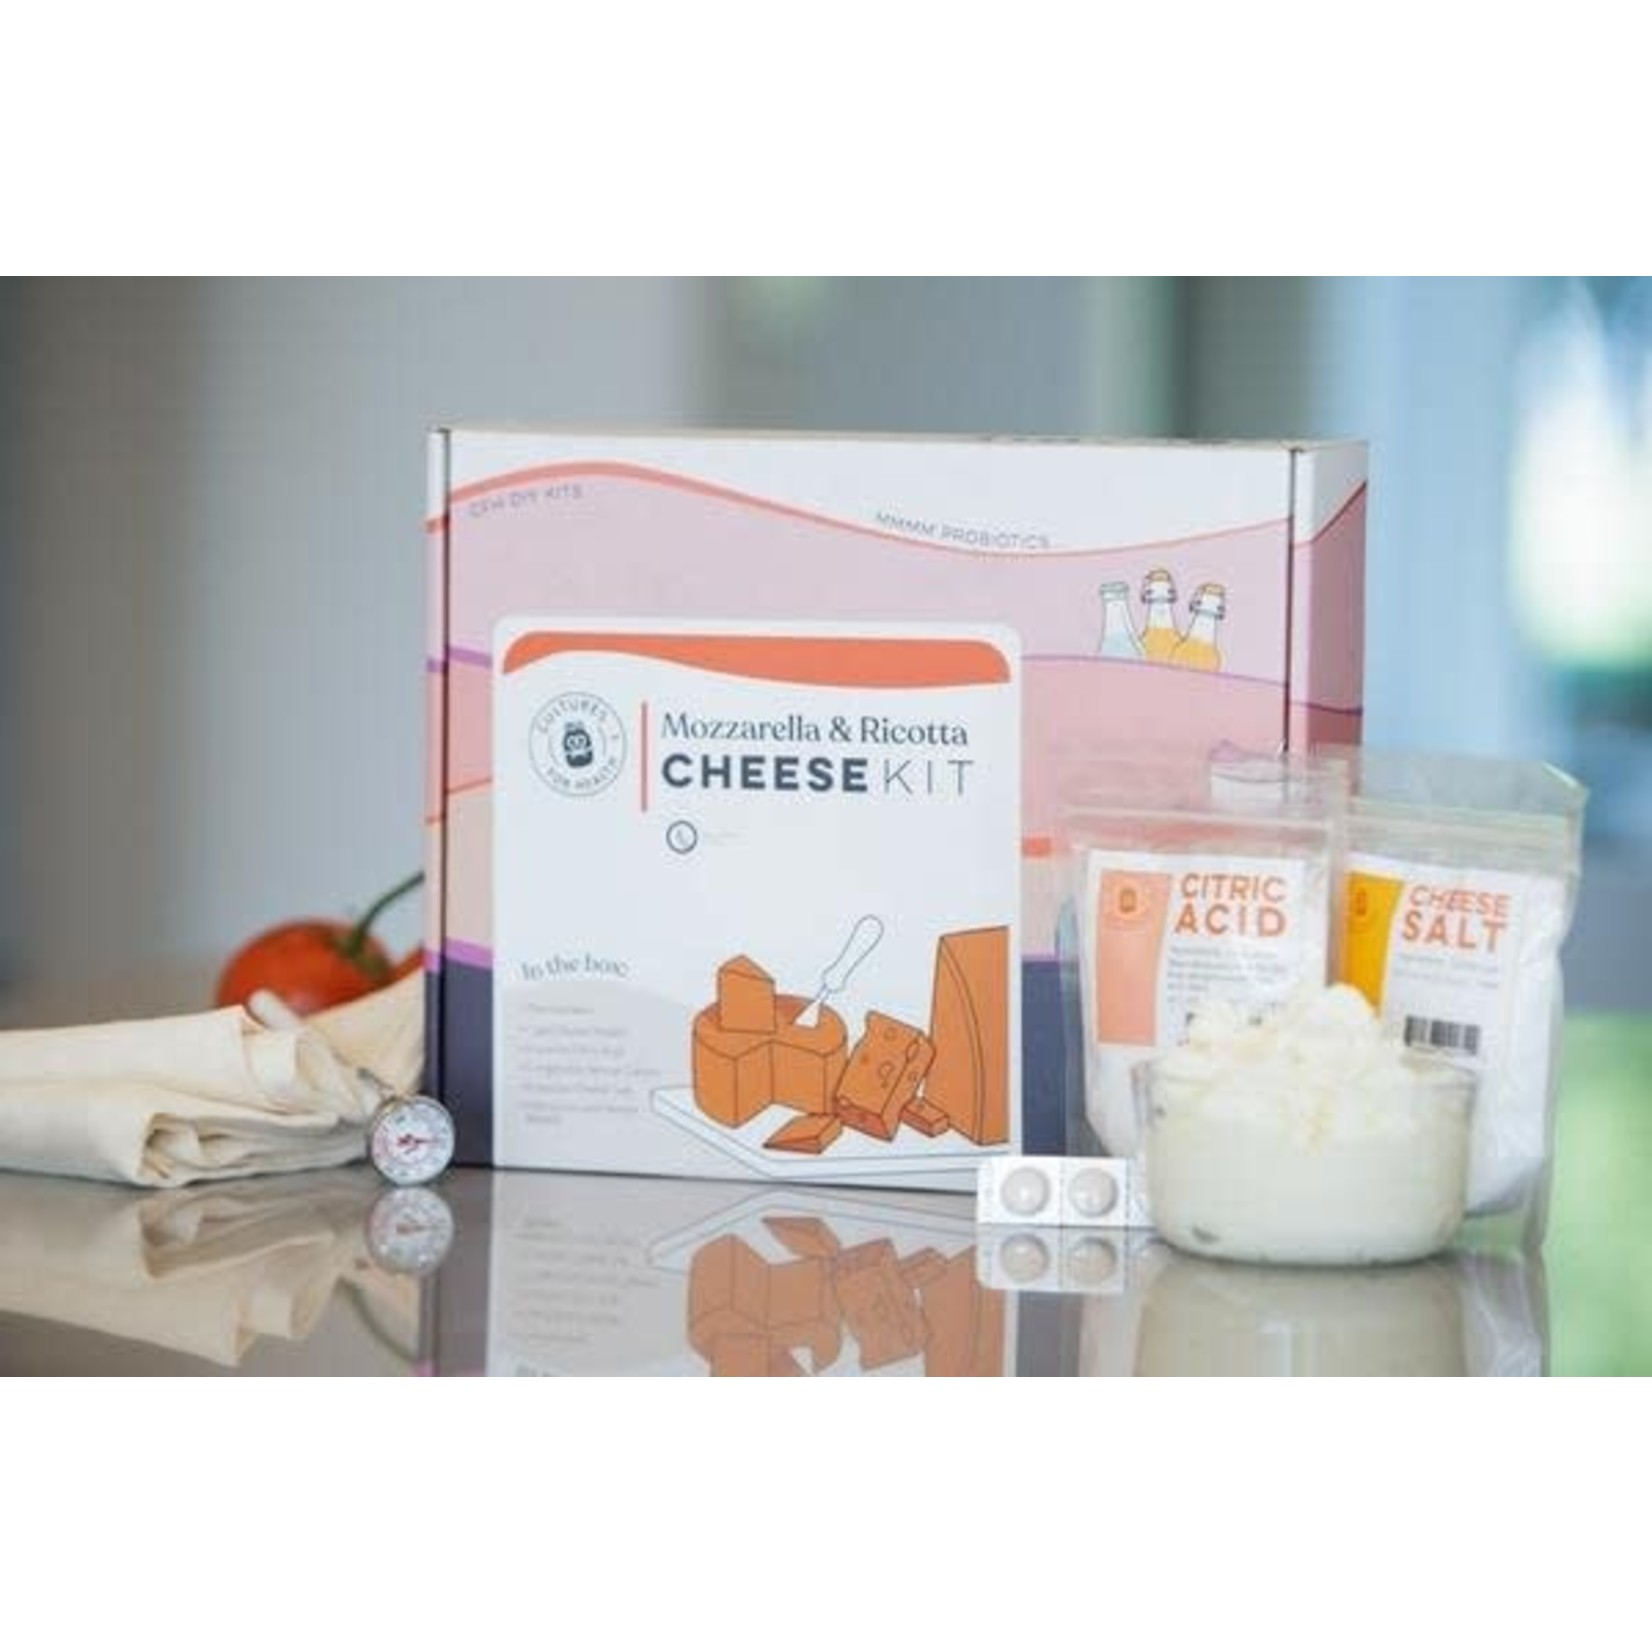 Cultures for Health Mozzarella and Ricotta Cheese Kit